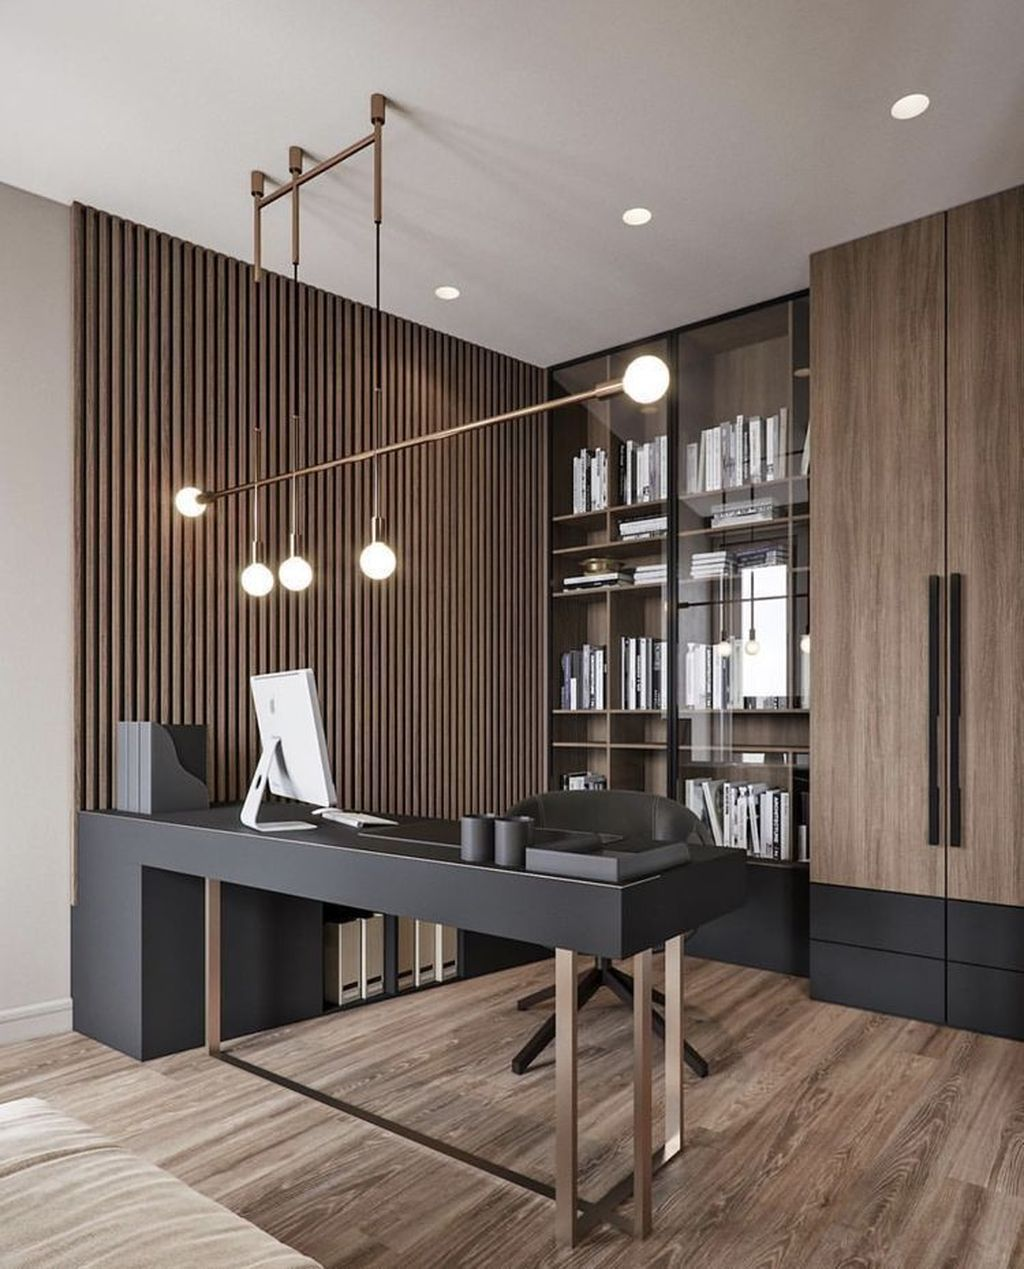 35 Admirable Modern Interior Design Ideas You Never Seen Before Magzho In 2020 Modern Office Interiors Office Interior Design Modern Modern Office Design Inspiration